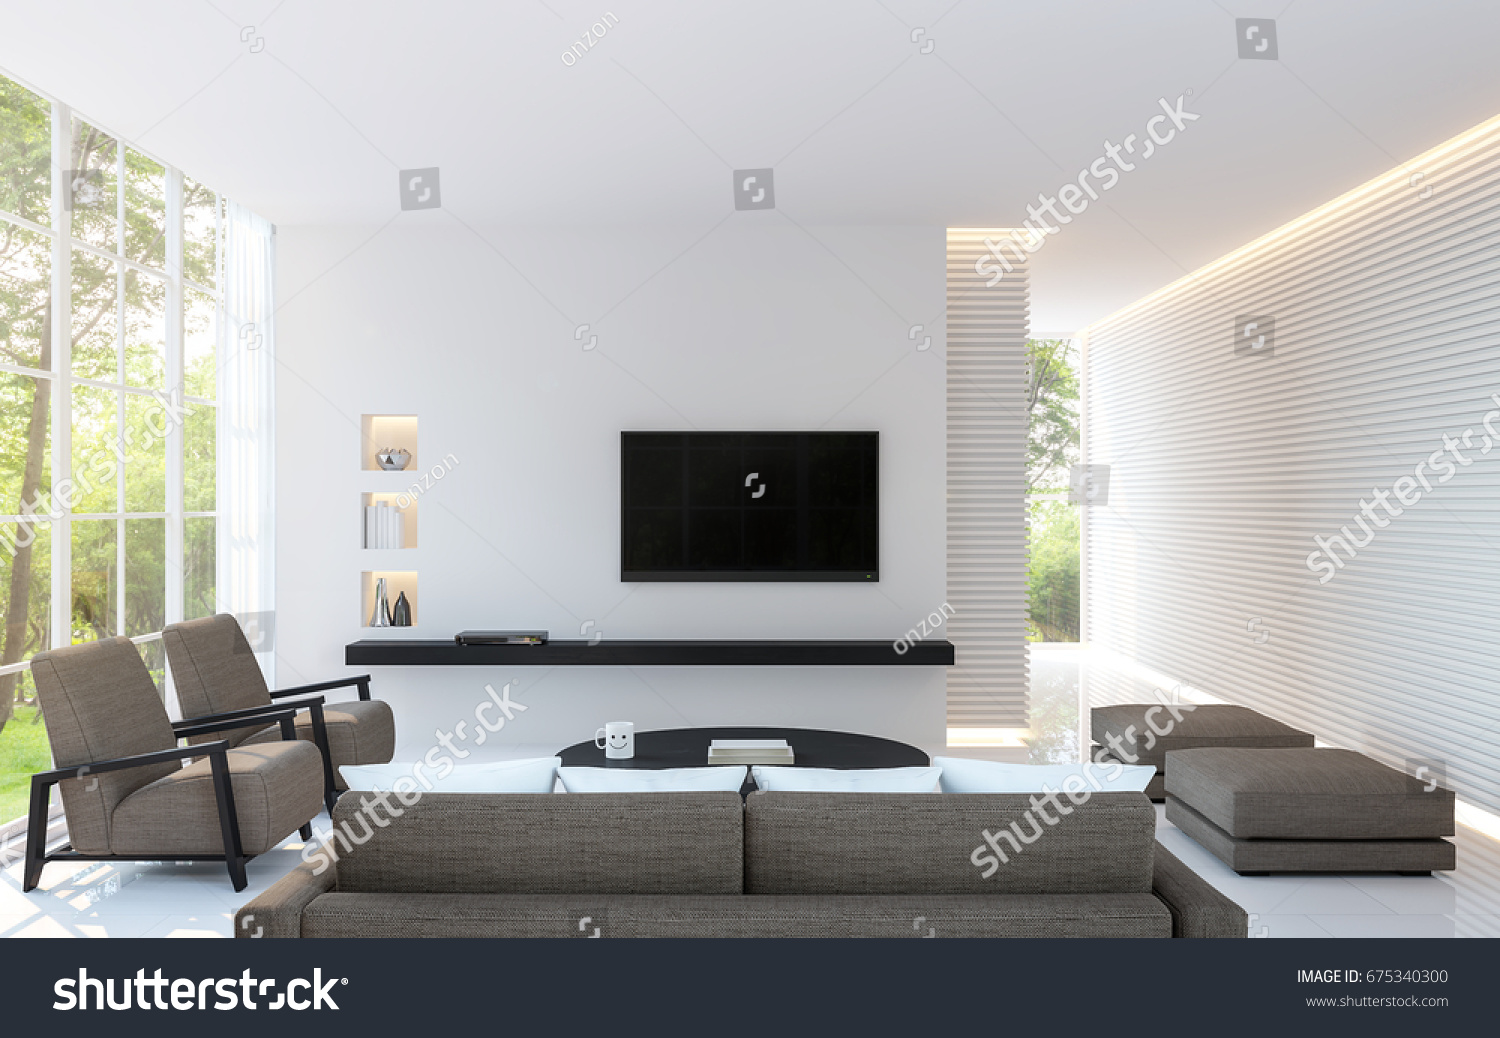 Modern White Living Room Decorate Wall Stock Illustration 675340300 ...